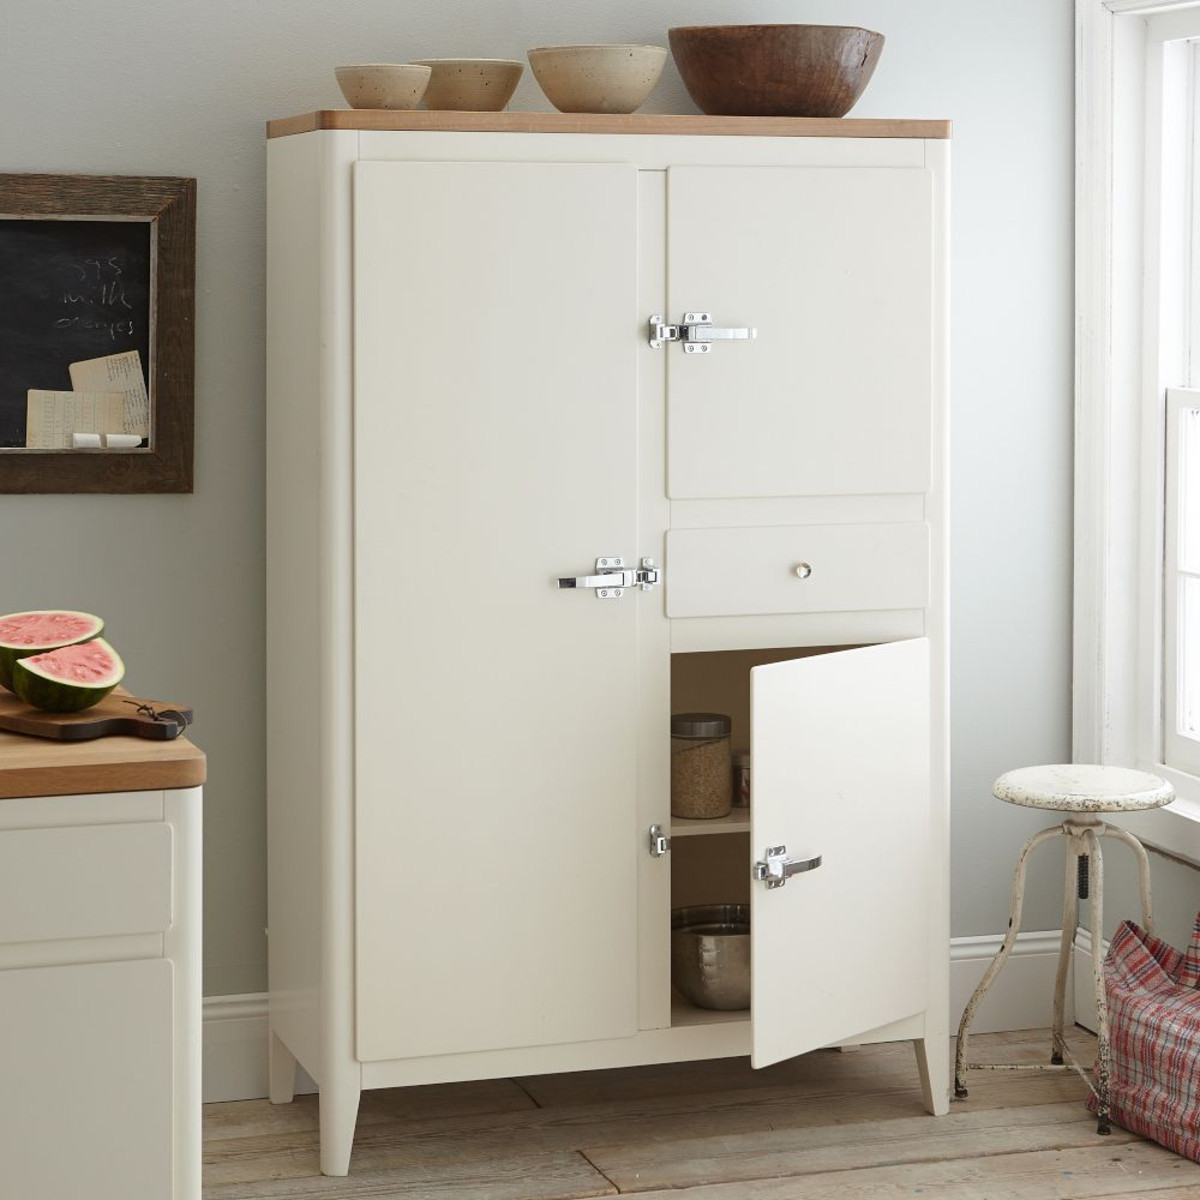 Freestanding kitchen unit mad about the house - Kitchen pantry cabinets freestanding ...